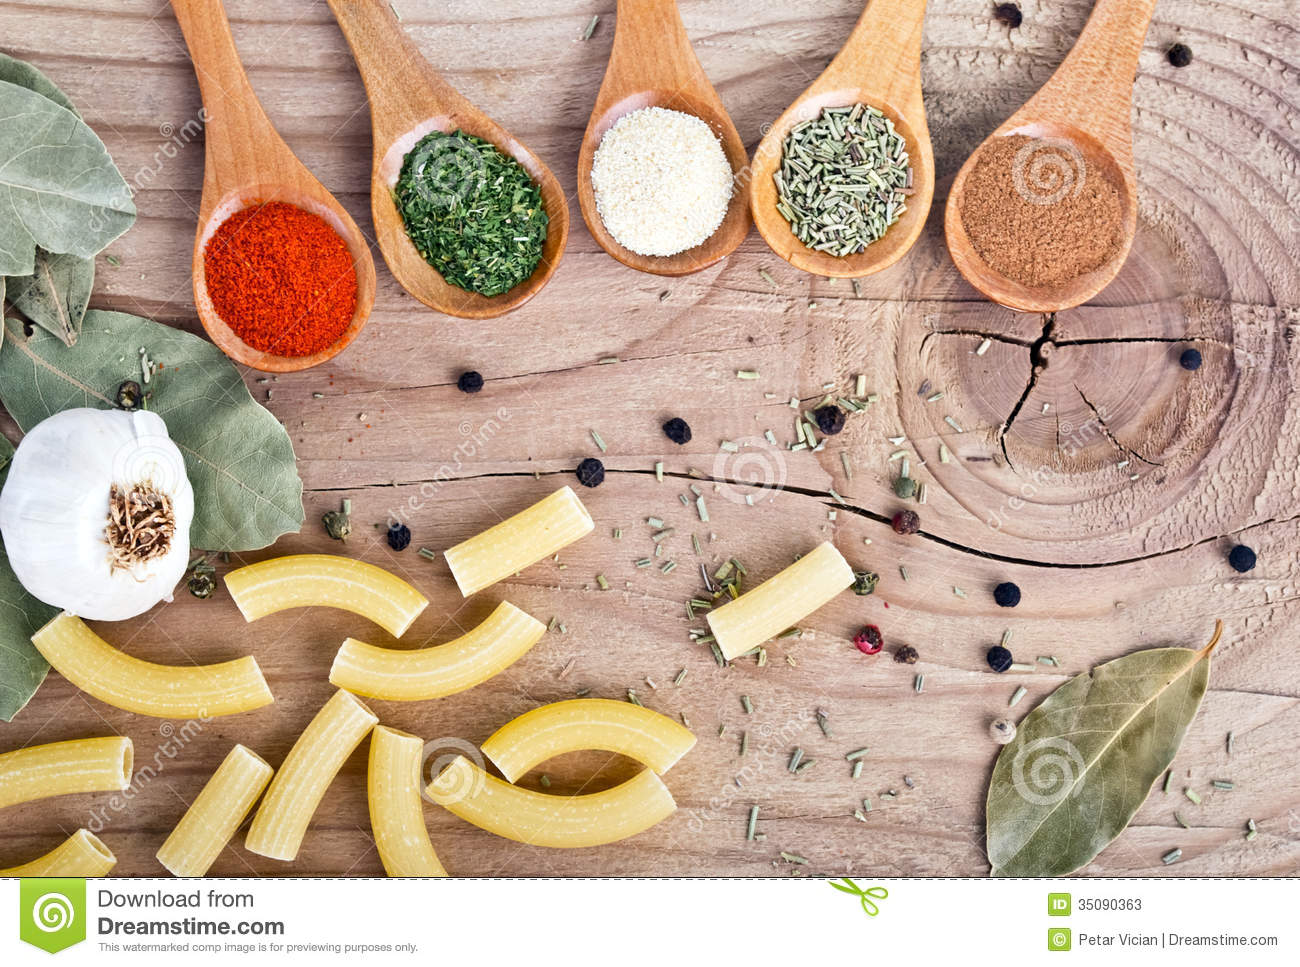 Spices food preparation on table food ingredients stock for Cuisine wooden